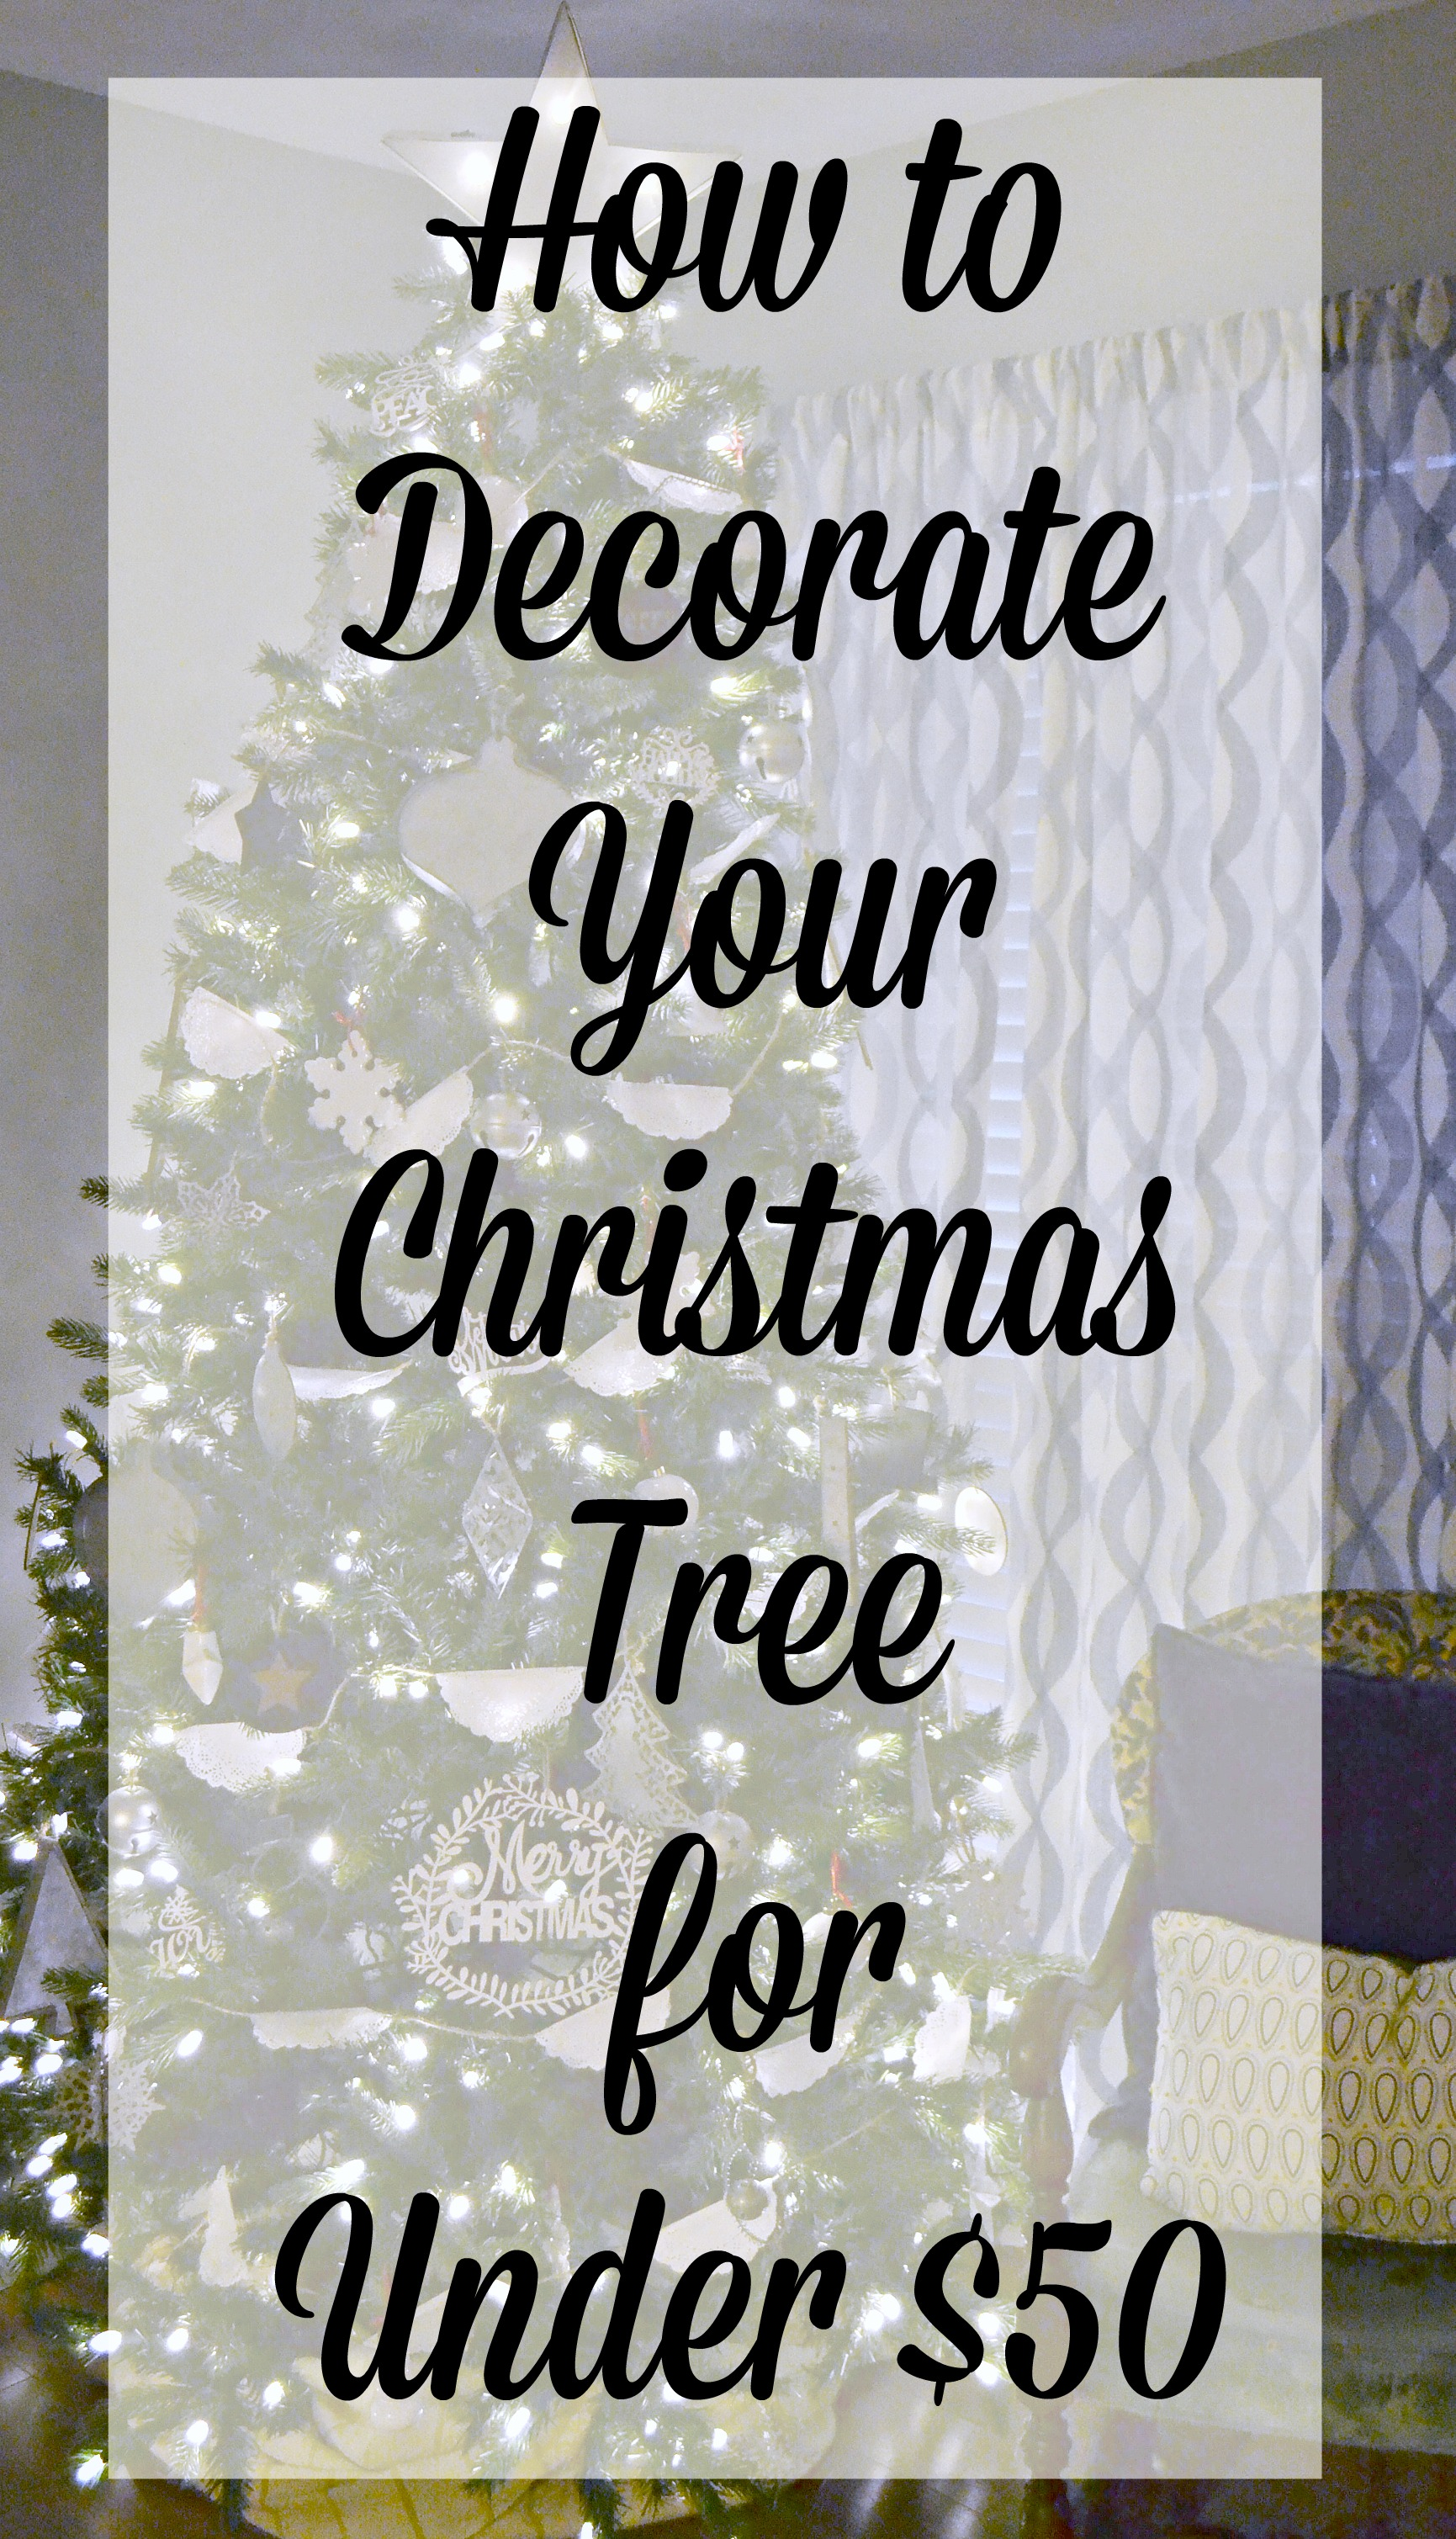 How to Decorate Your Christmas Tree for Under $50